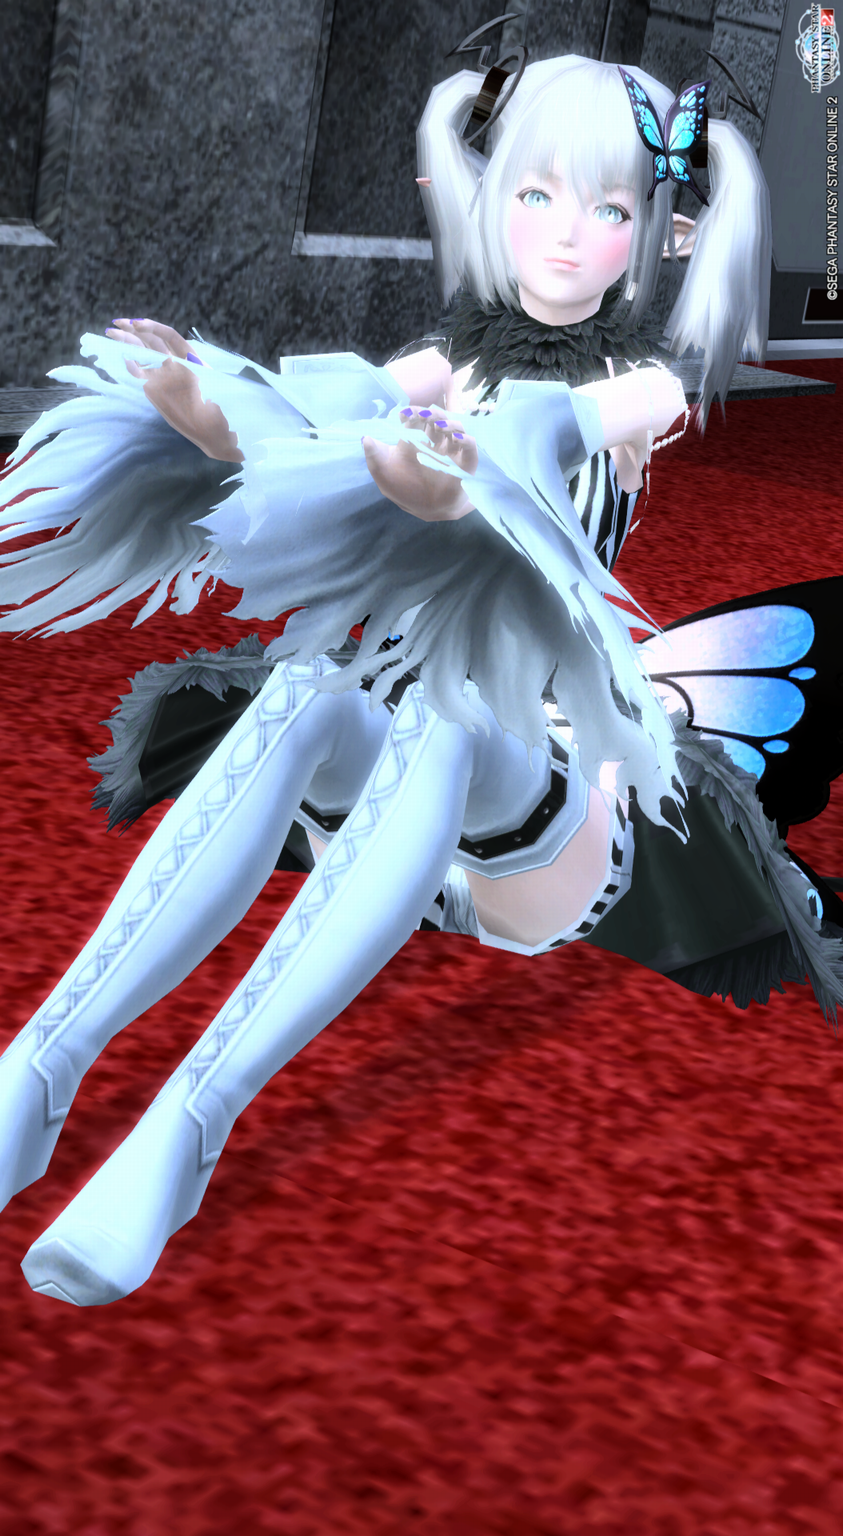 pso20150325_054833_019.png